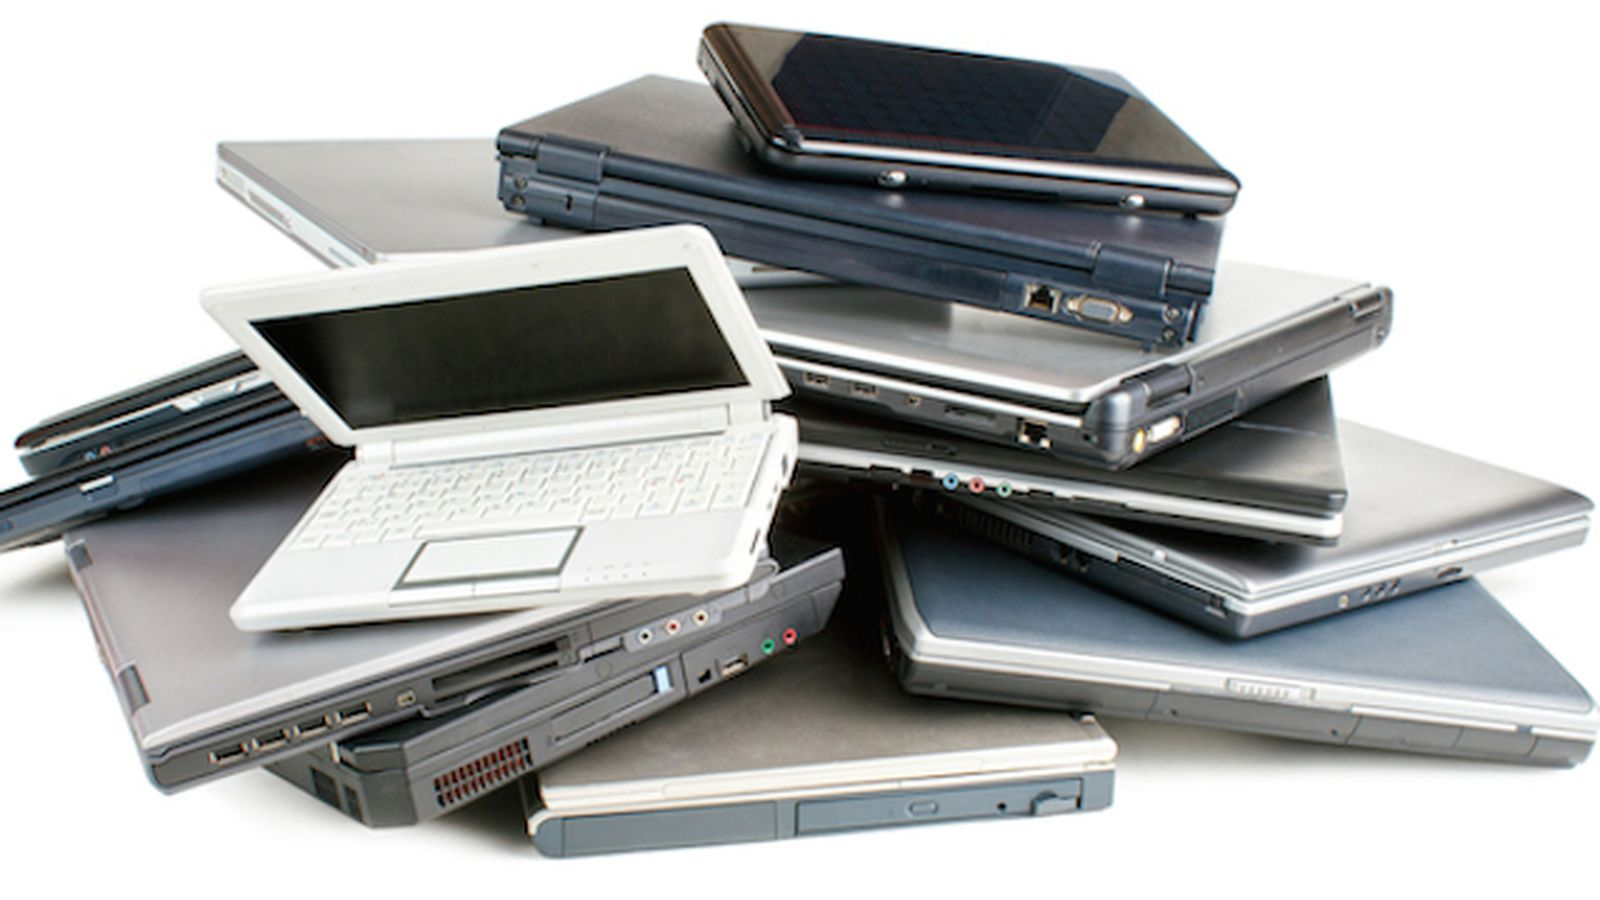 Buying and Selling Used Laptops